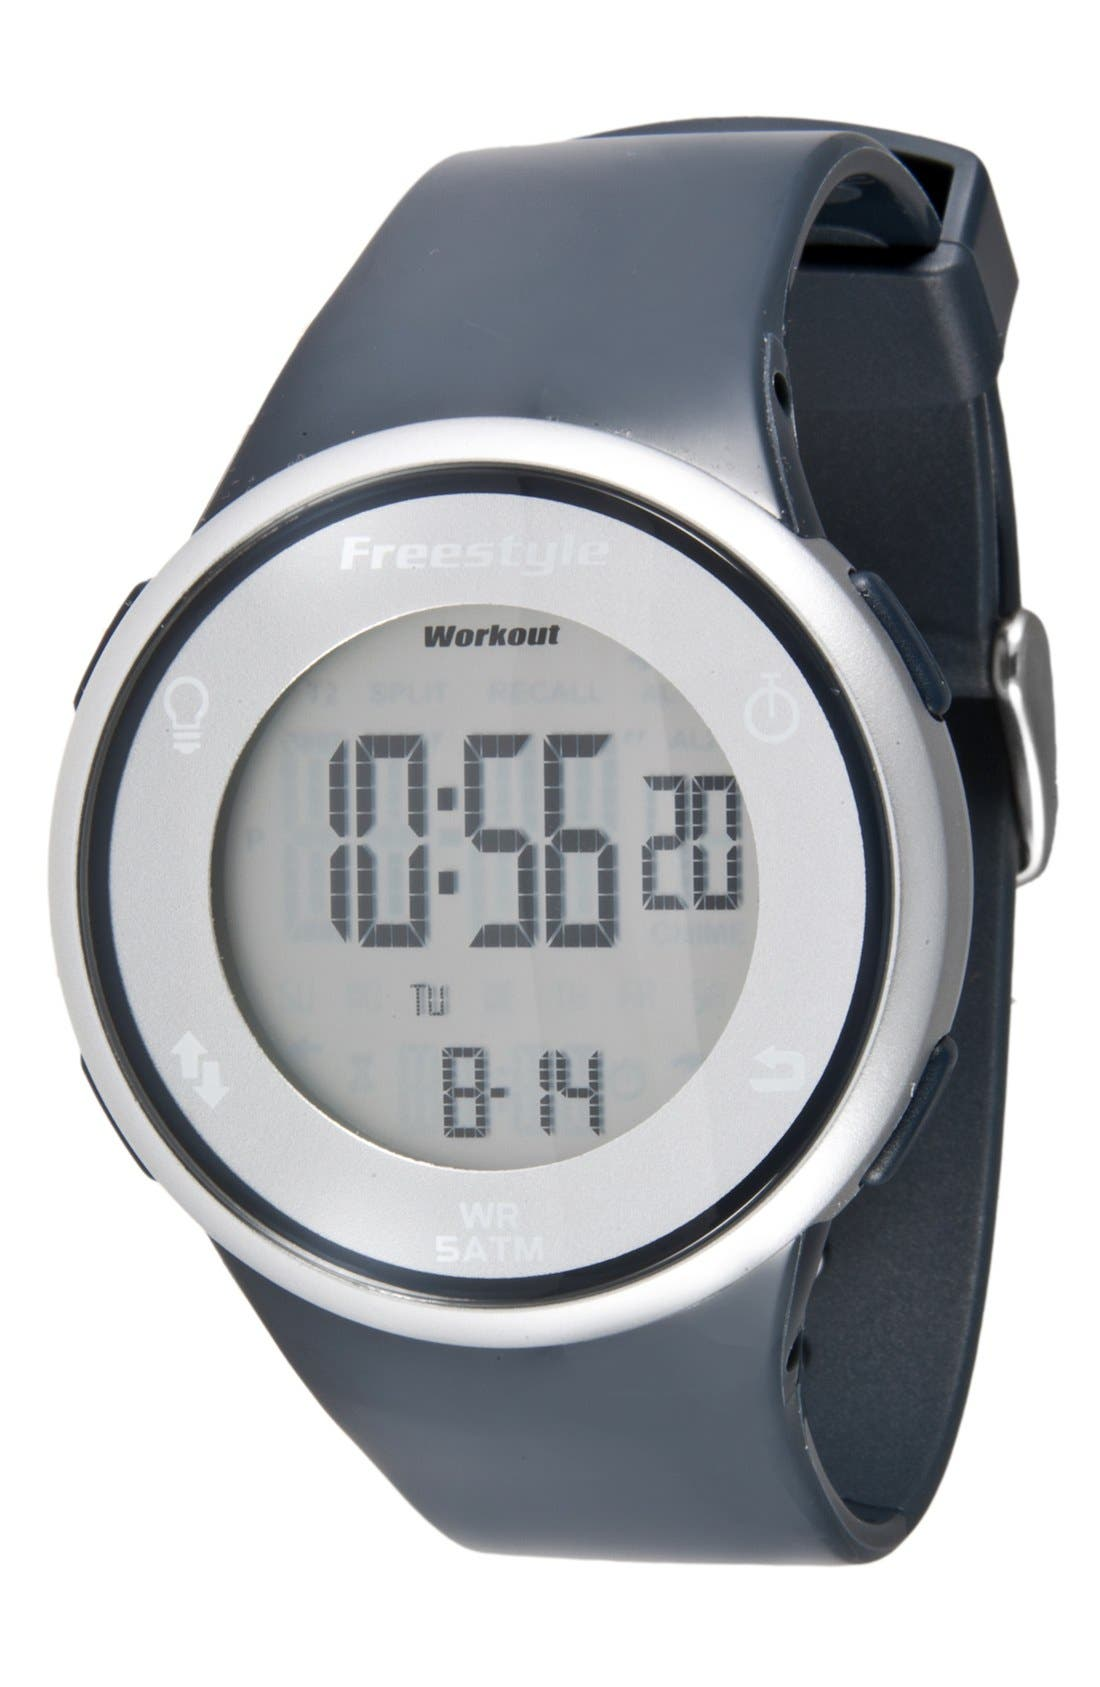 Main Image - Freestyle 'Sprint' Digital Fitness Watch, 45mm